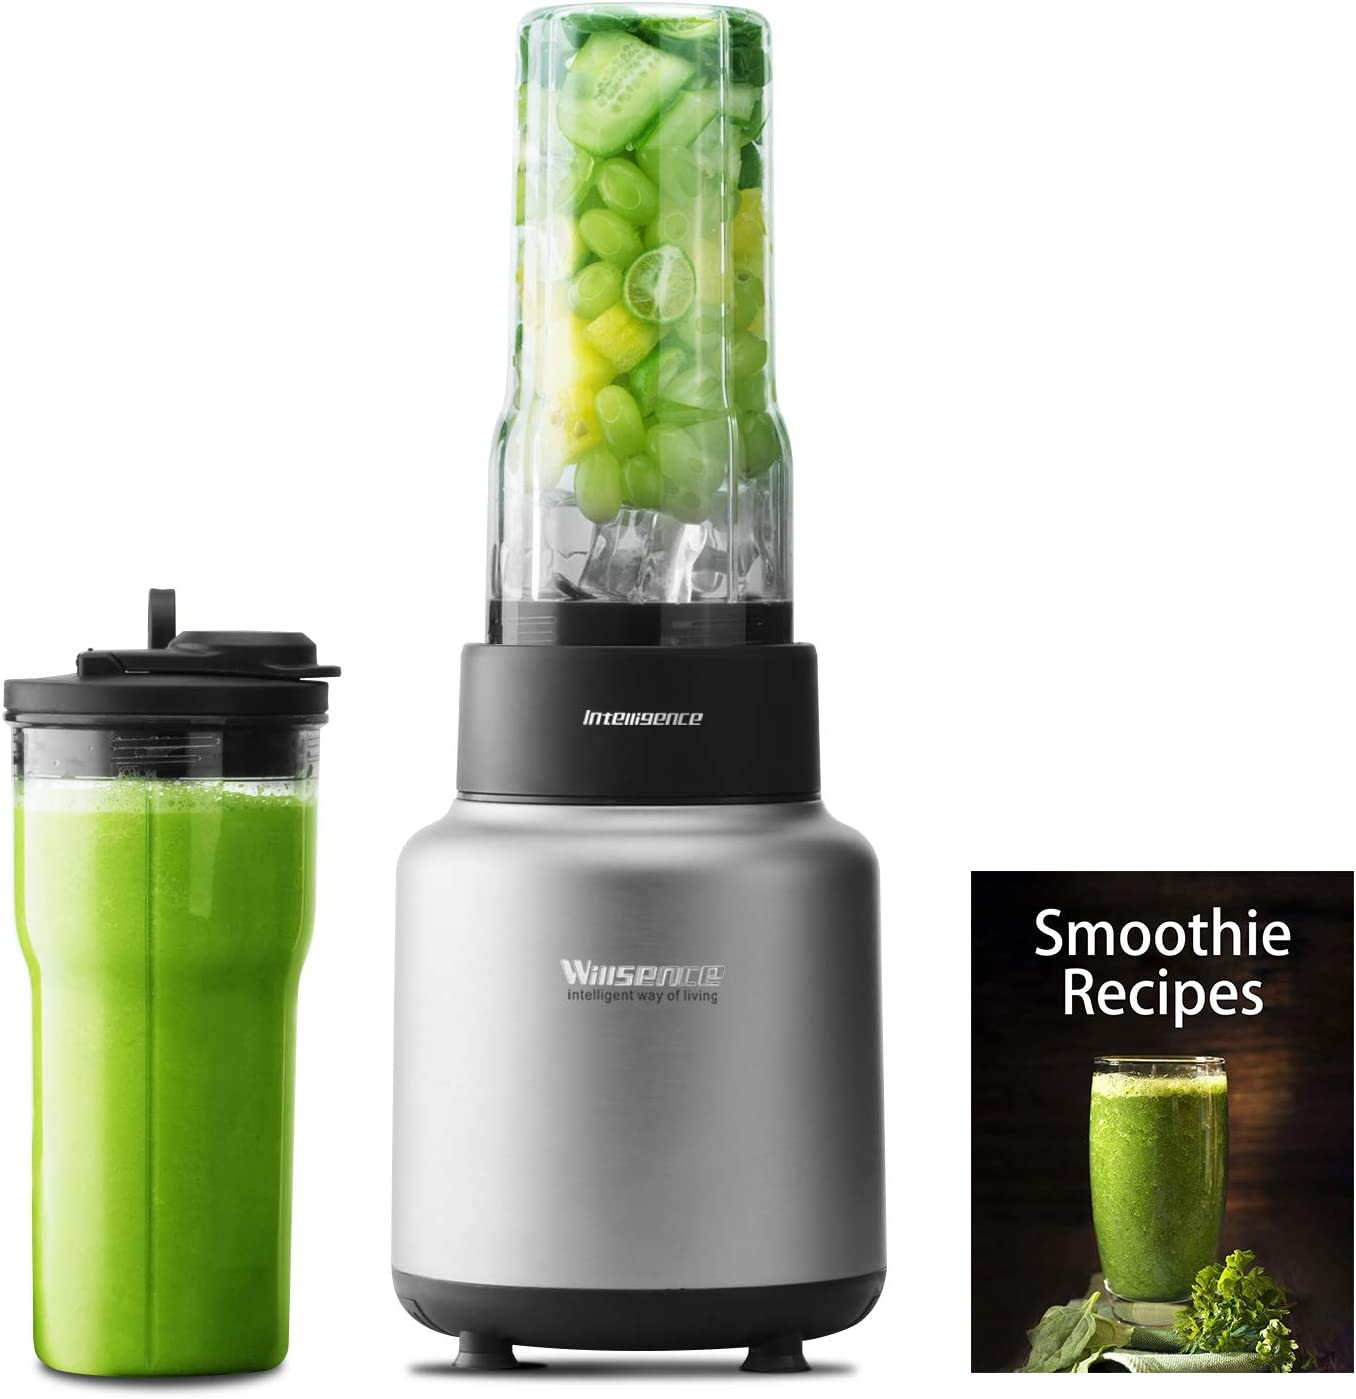 Blender, smoothie blender 30000 RPM/Min, 1500W High Speed Blender with NUTRI-IQ Intelligent System, 6 different edges Stainless Steel blade, BPA-Free 2 x 24 OZ Tritan Travel Cups, Recipe Book included